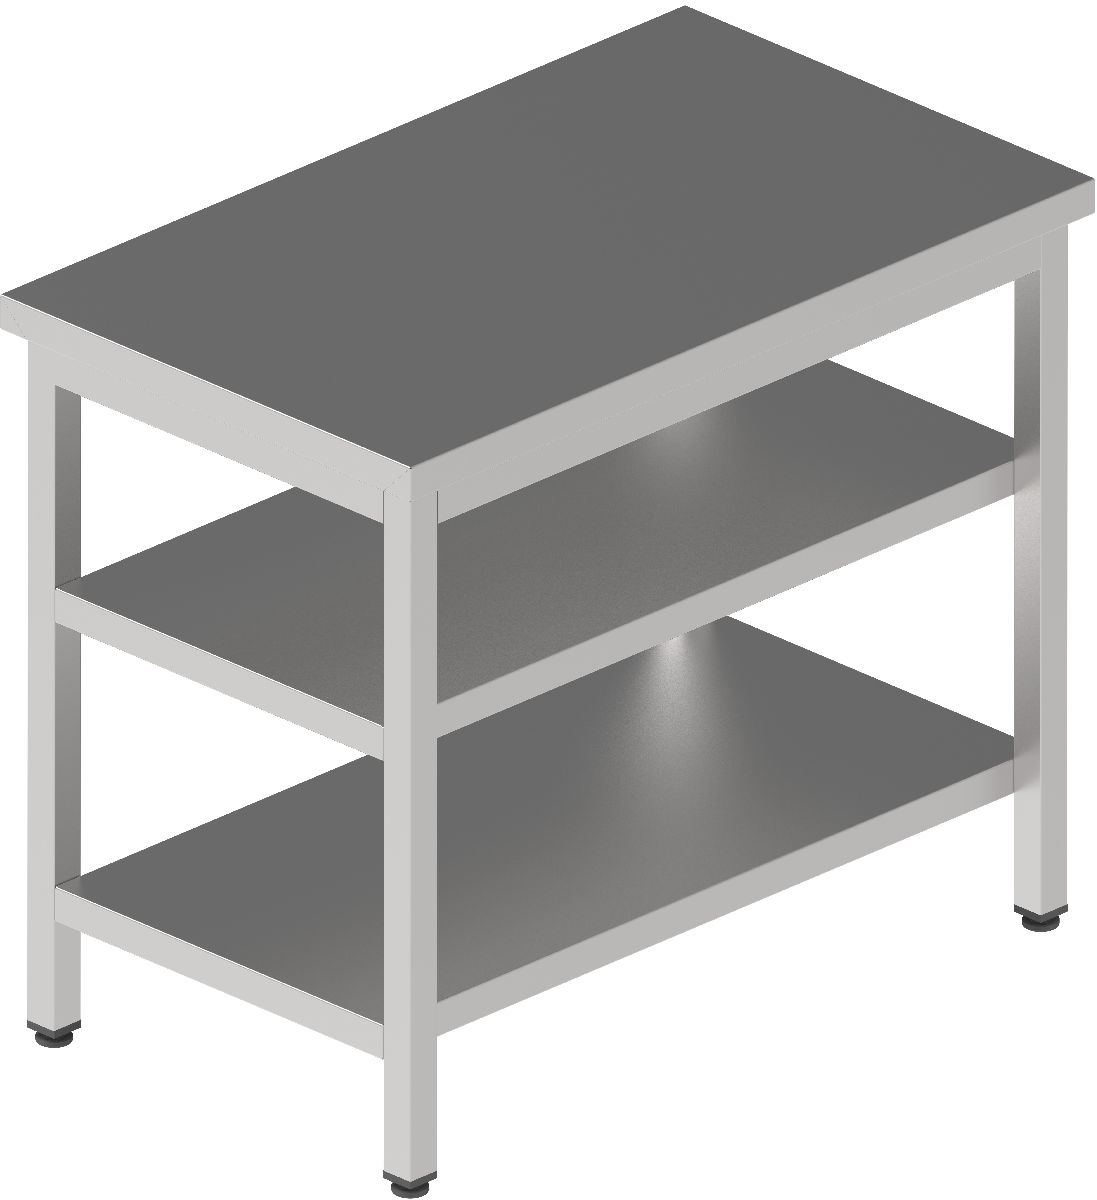 Kitchen Worktable - 2 Shelf